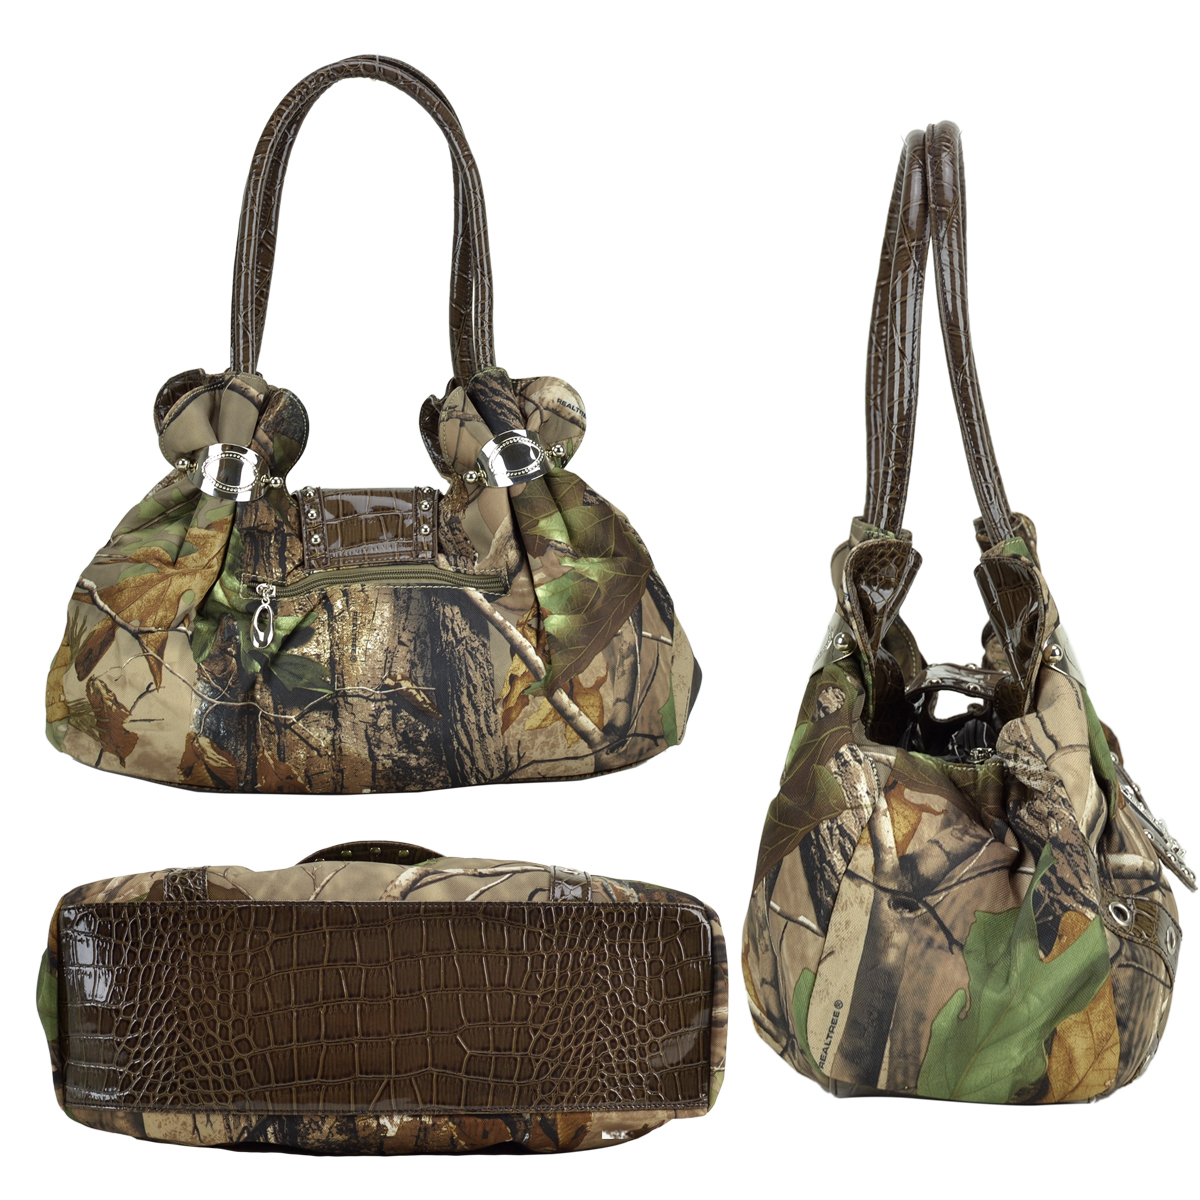 Dasein® Studded Satchel Bag in Realtree® Camo with Rhinestone Cross Ornament